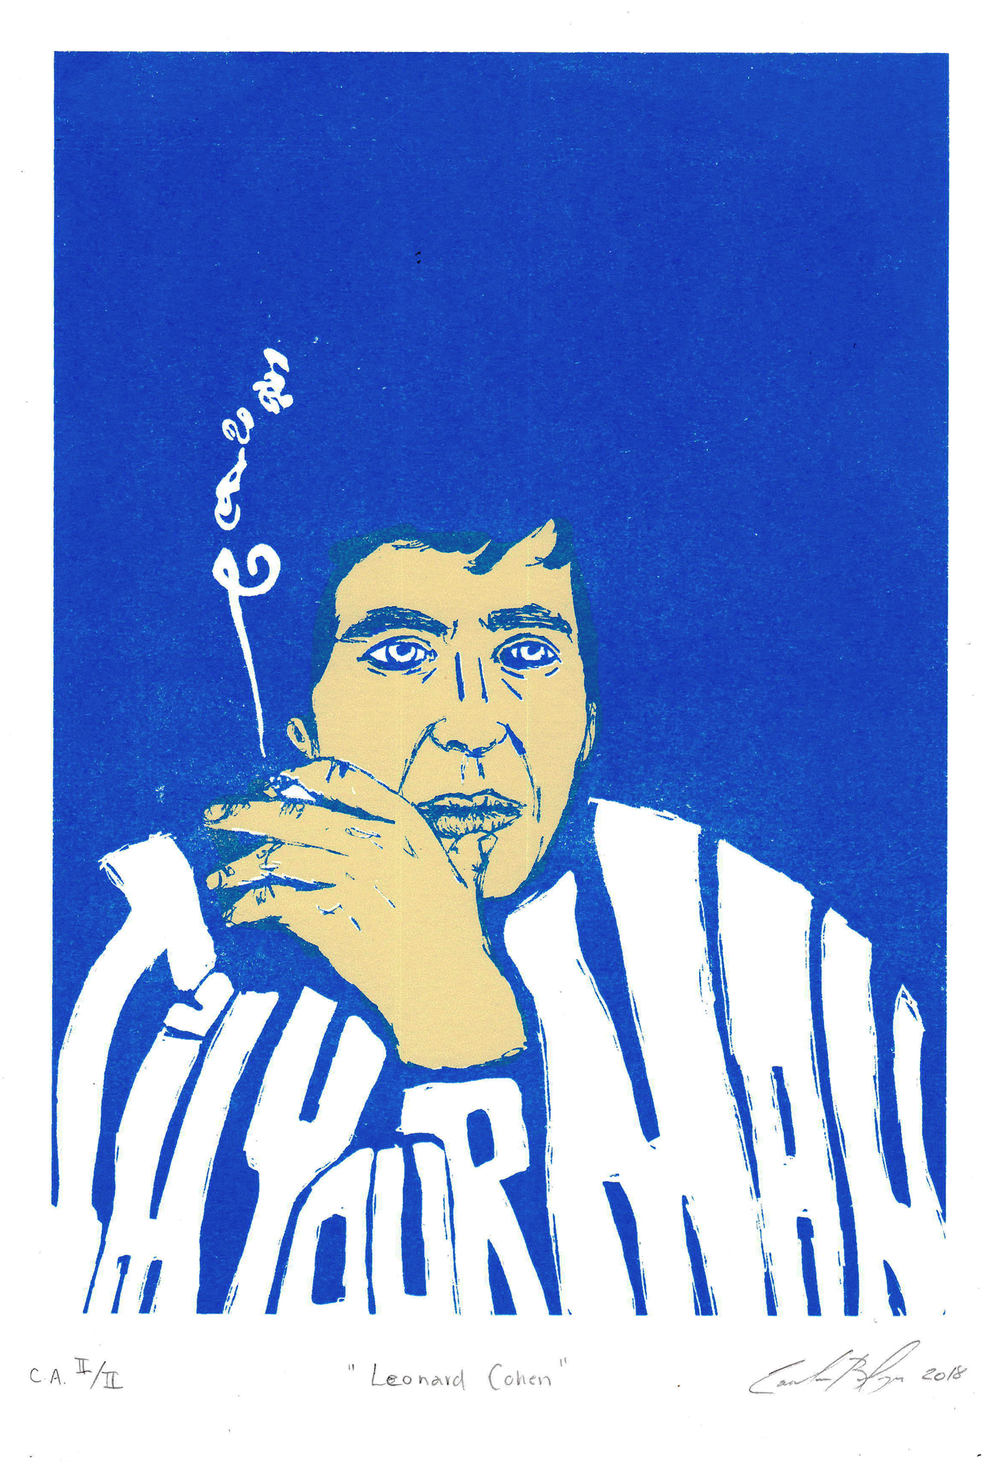 Image of Leonard Cohen - screen printing